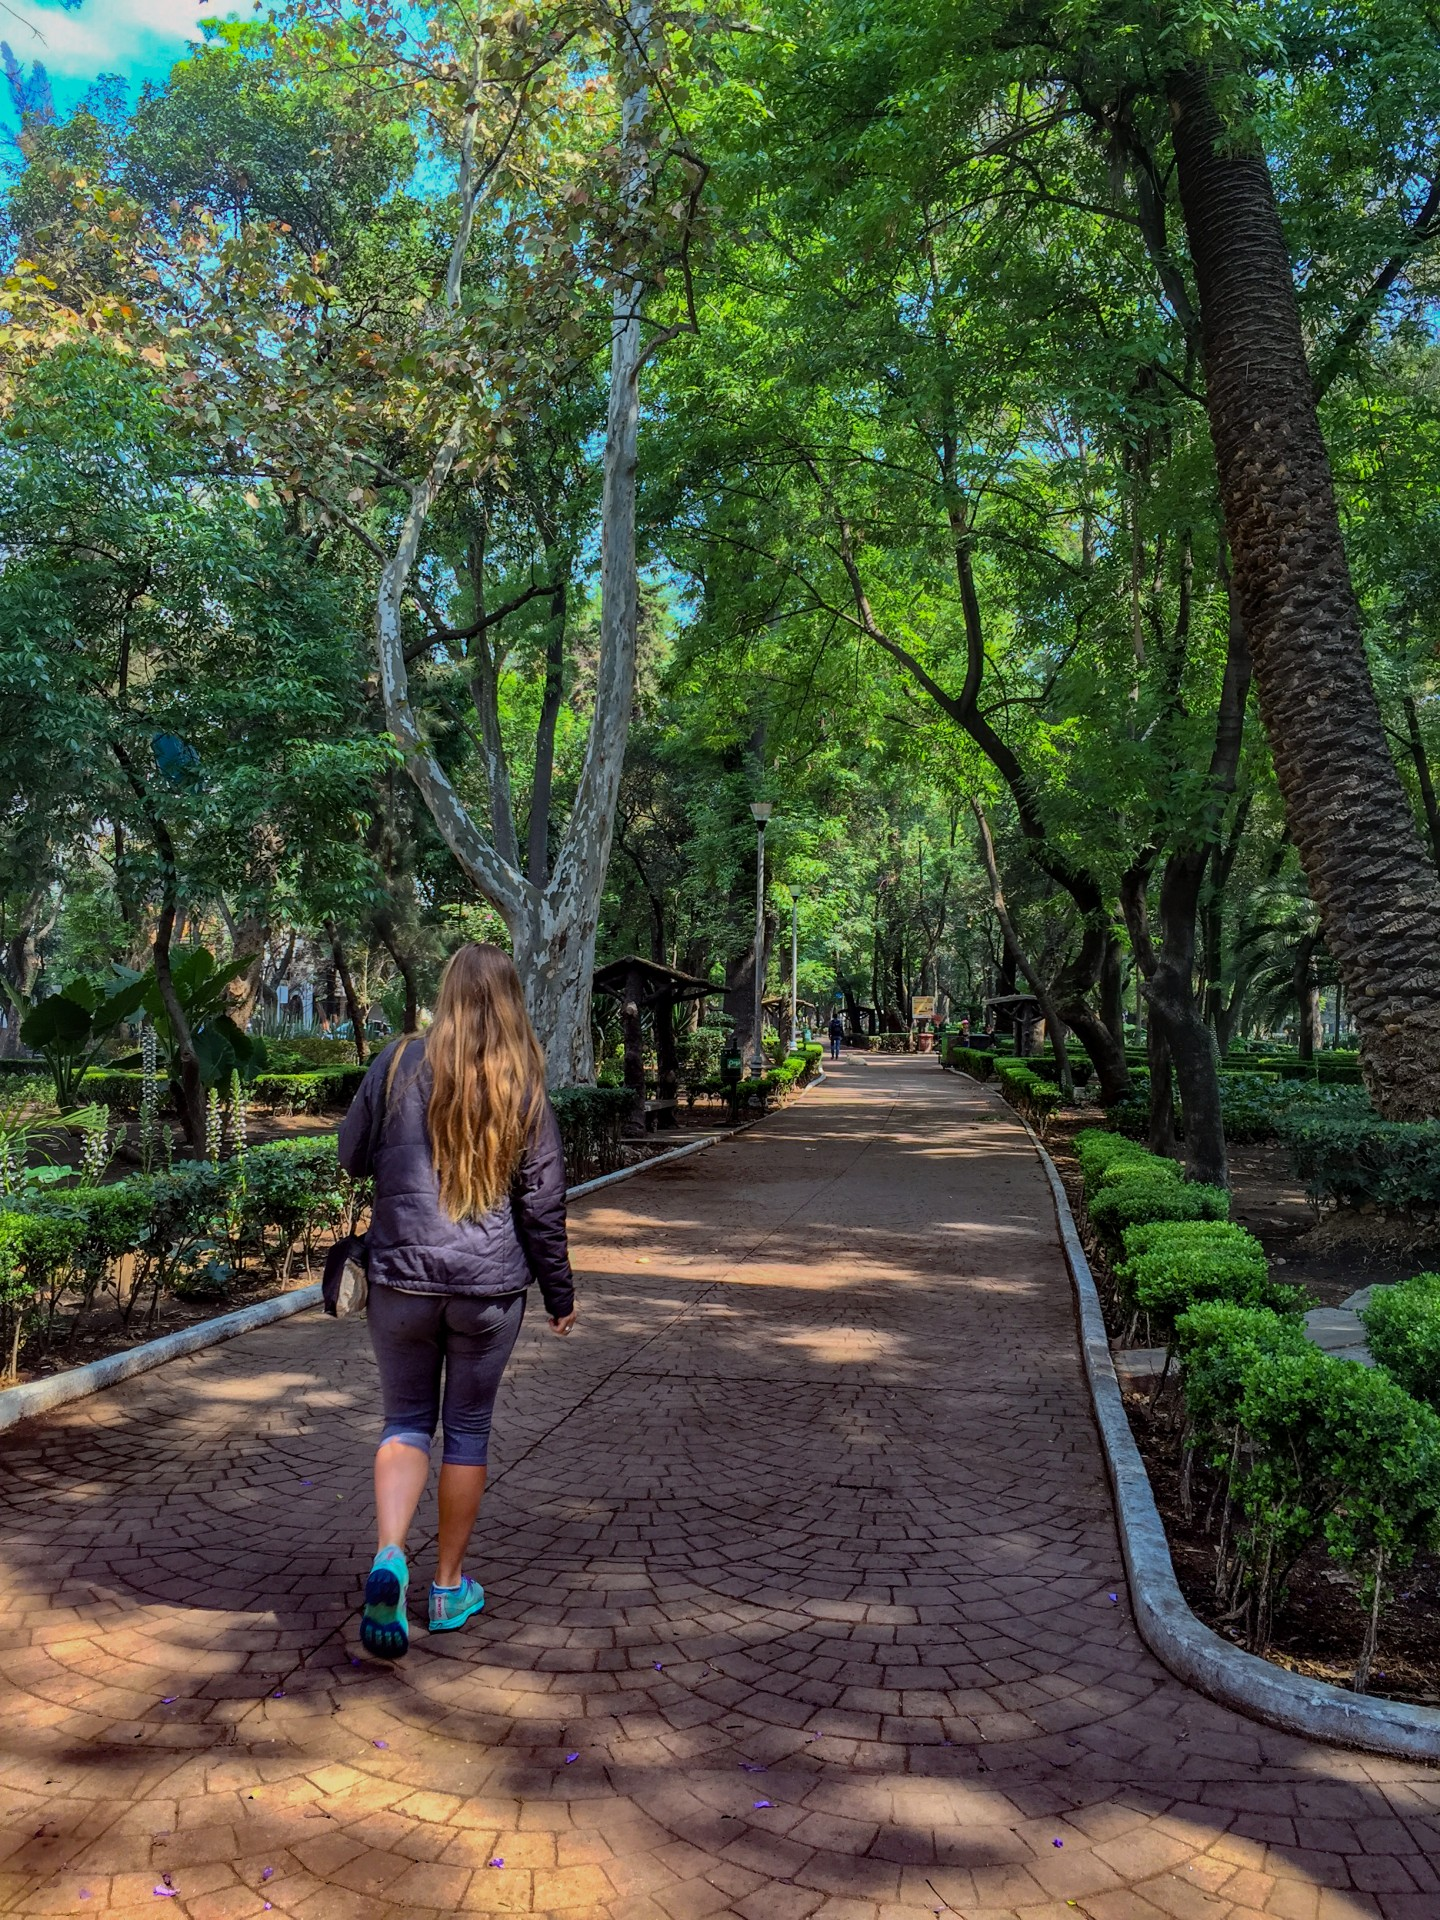 I don't think most people know that Mexico City is incredibly green, one of the most lush and verdant cities I have ever visited. Here Shannon walks the old velodrome track in the center of Condesa.